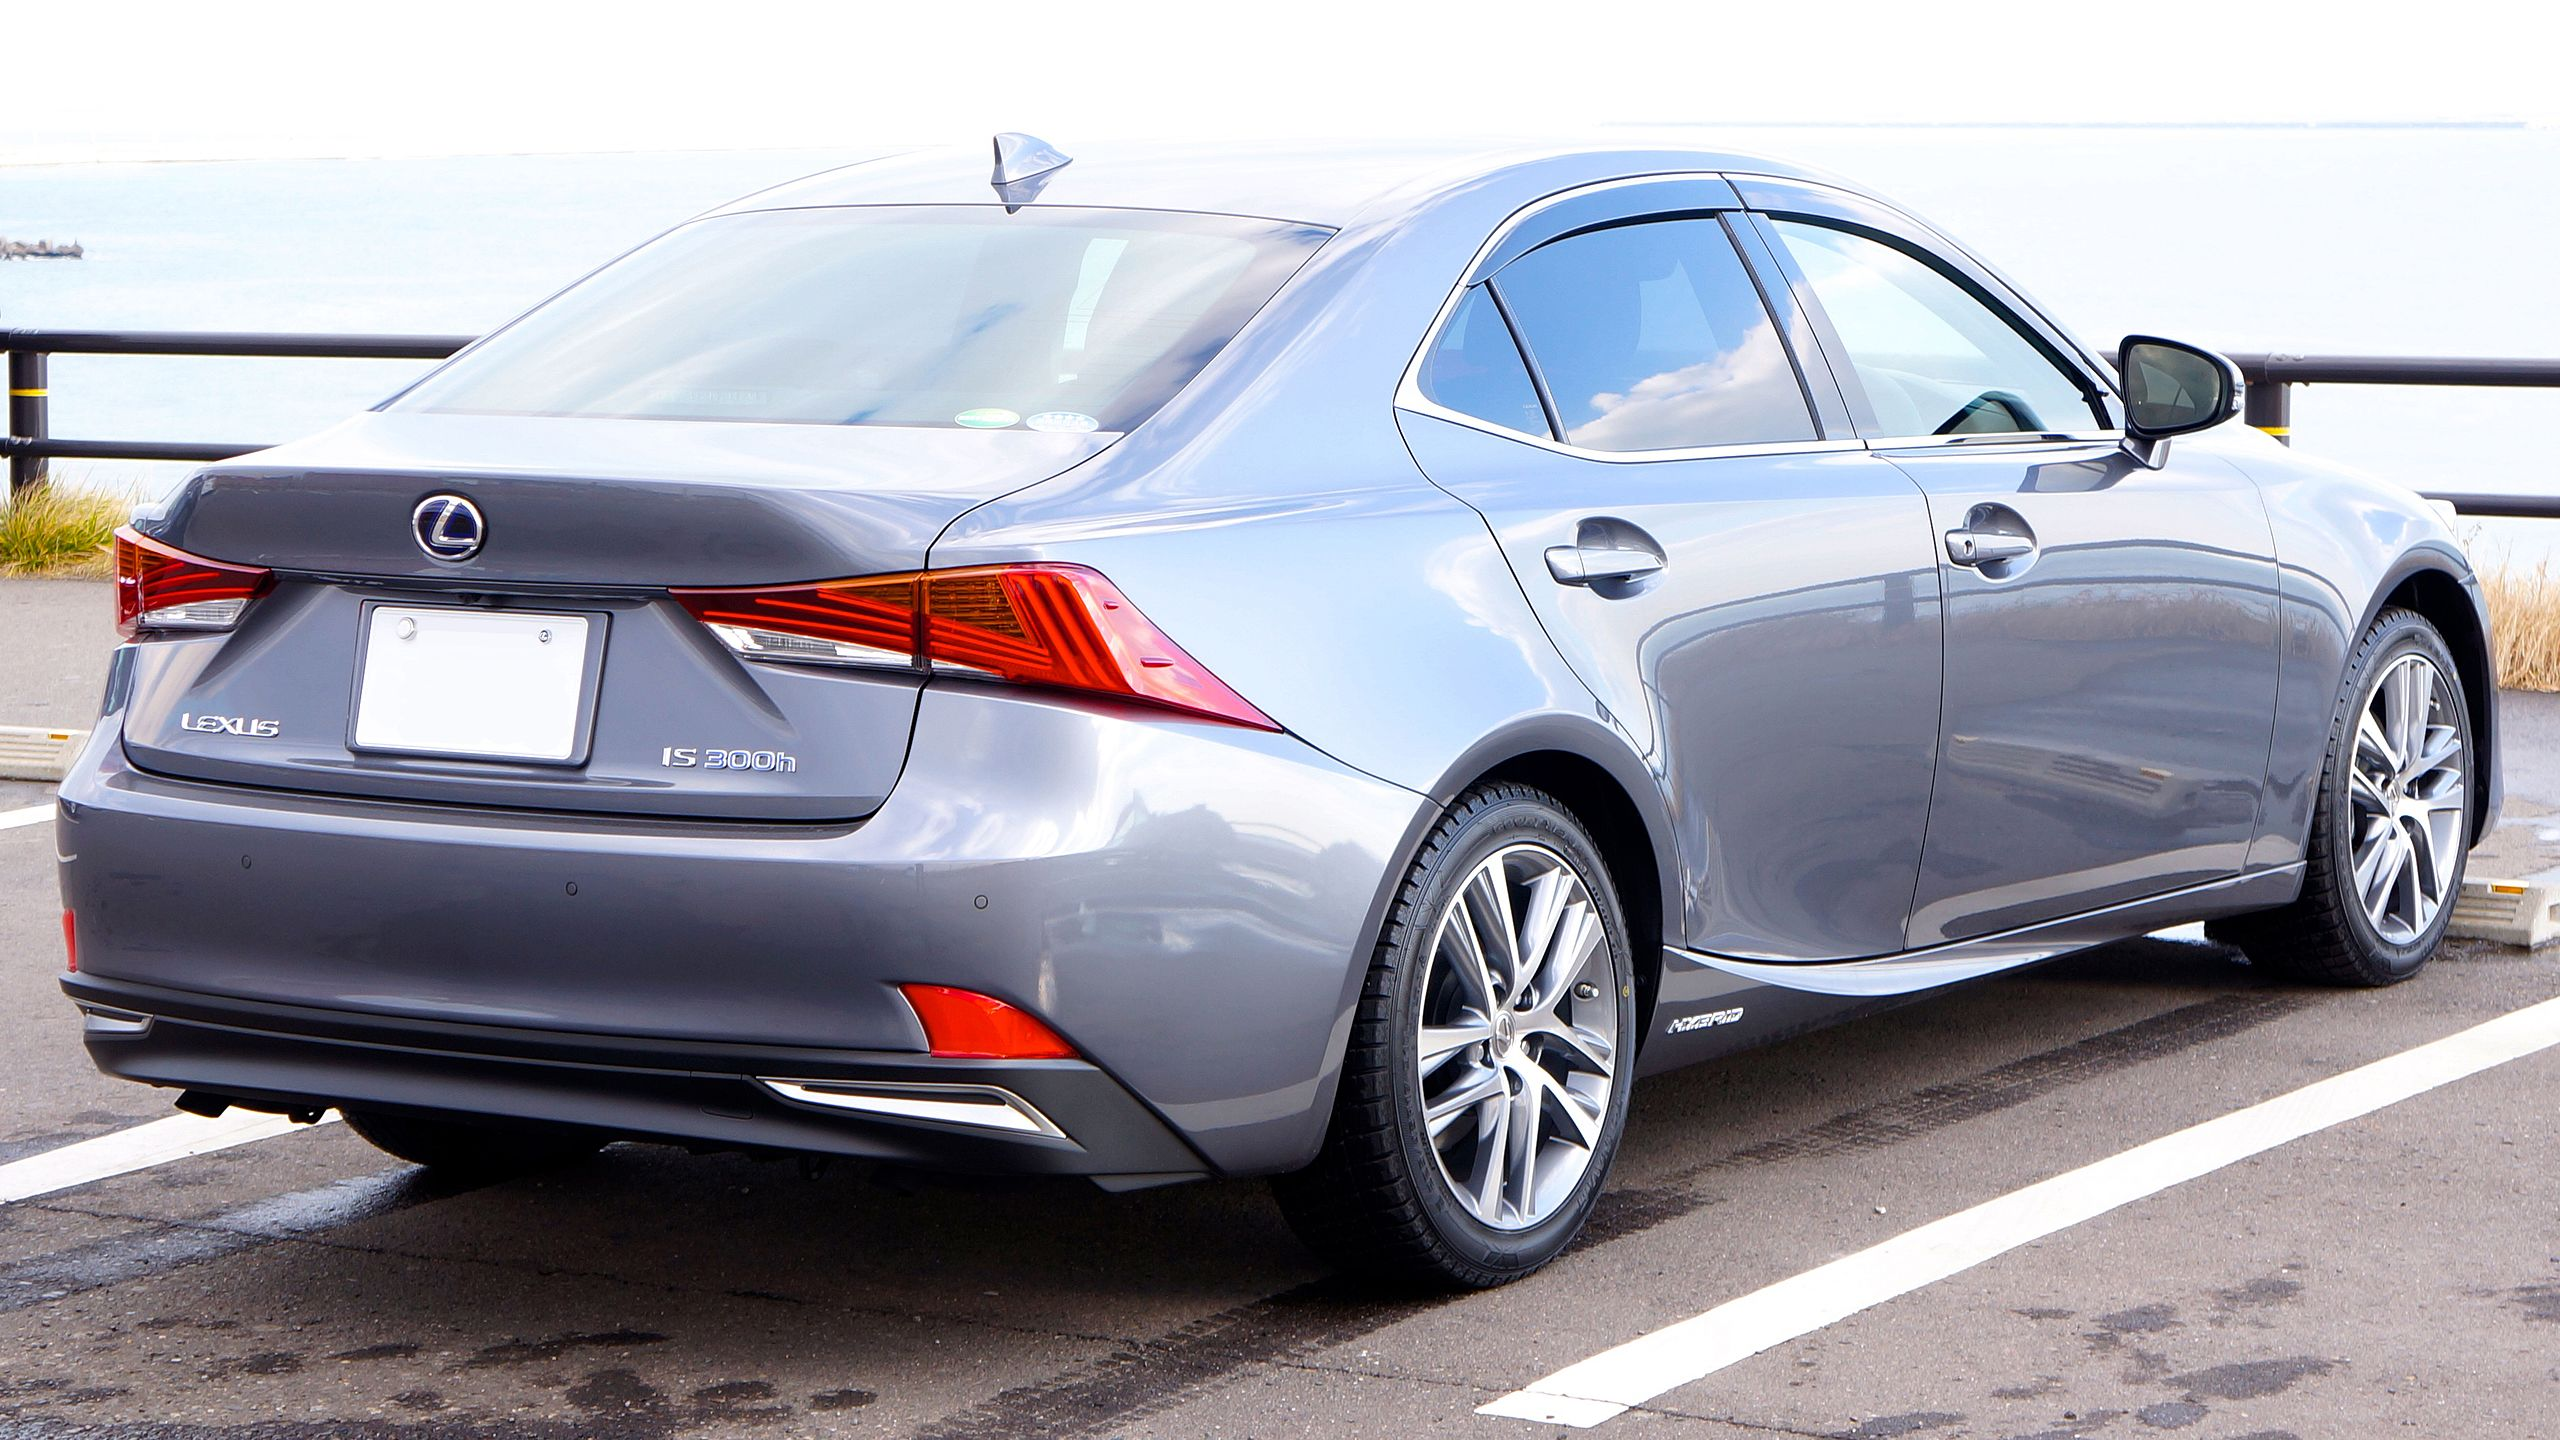 LEXUS IS300h 2017 JAPAN Rear.jpg